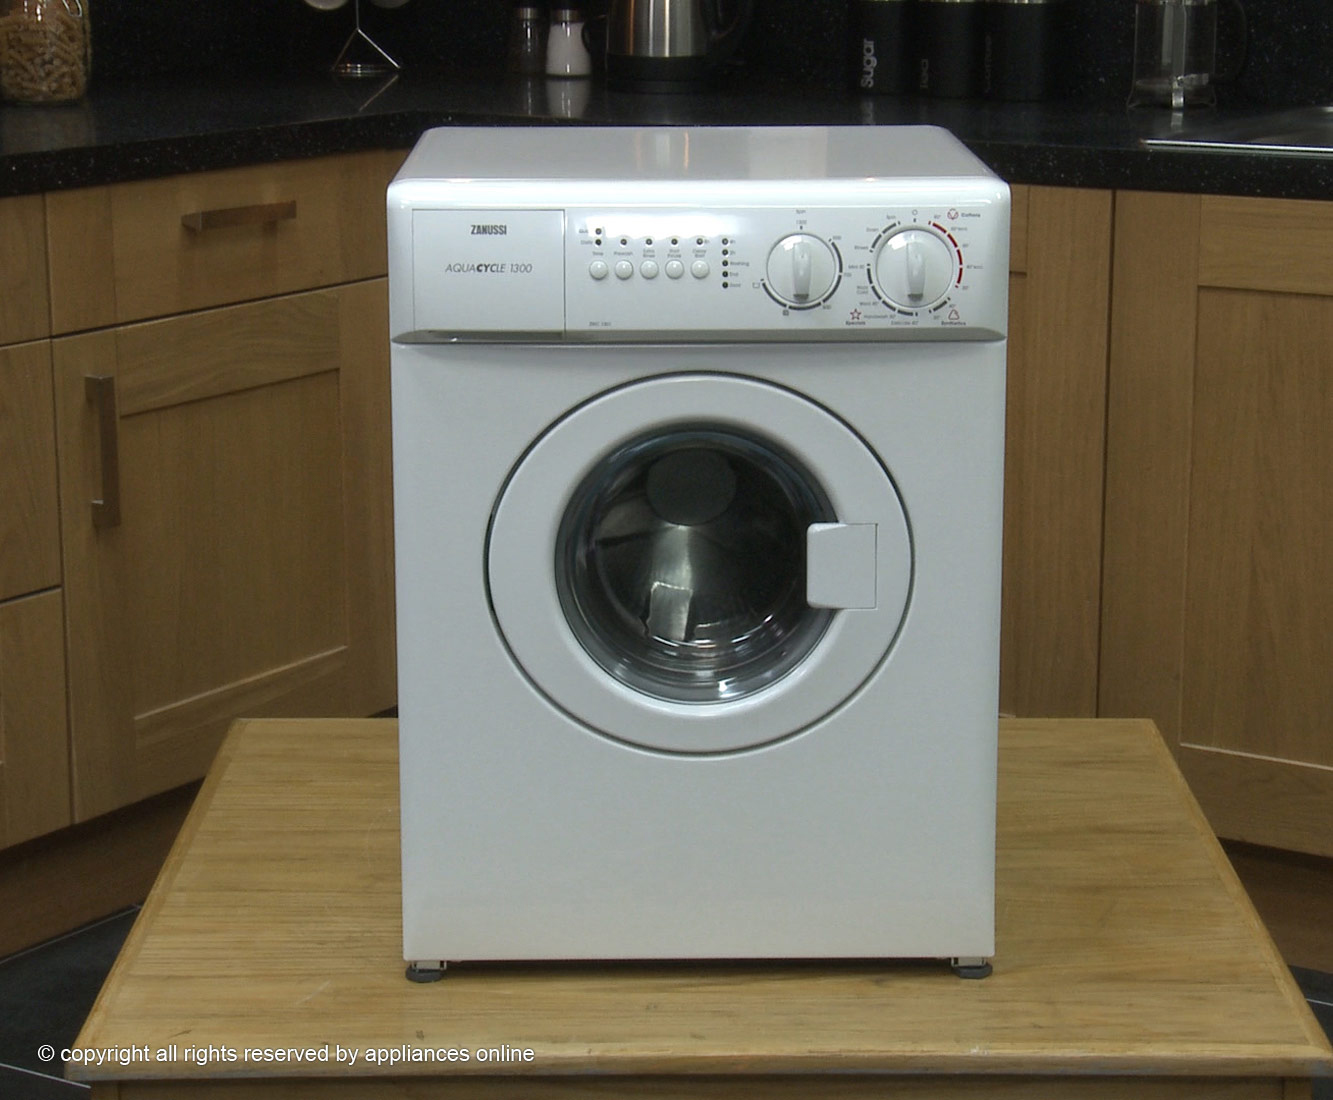 image Worlds smallest washing machine